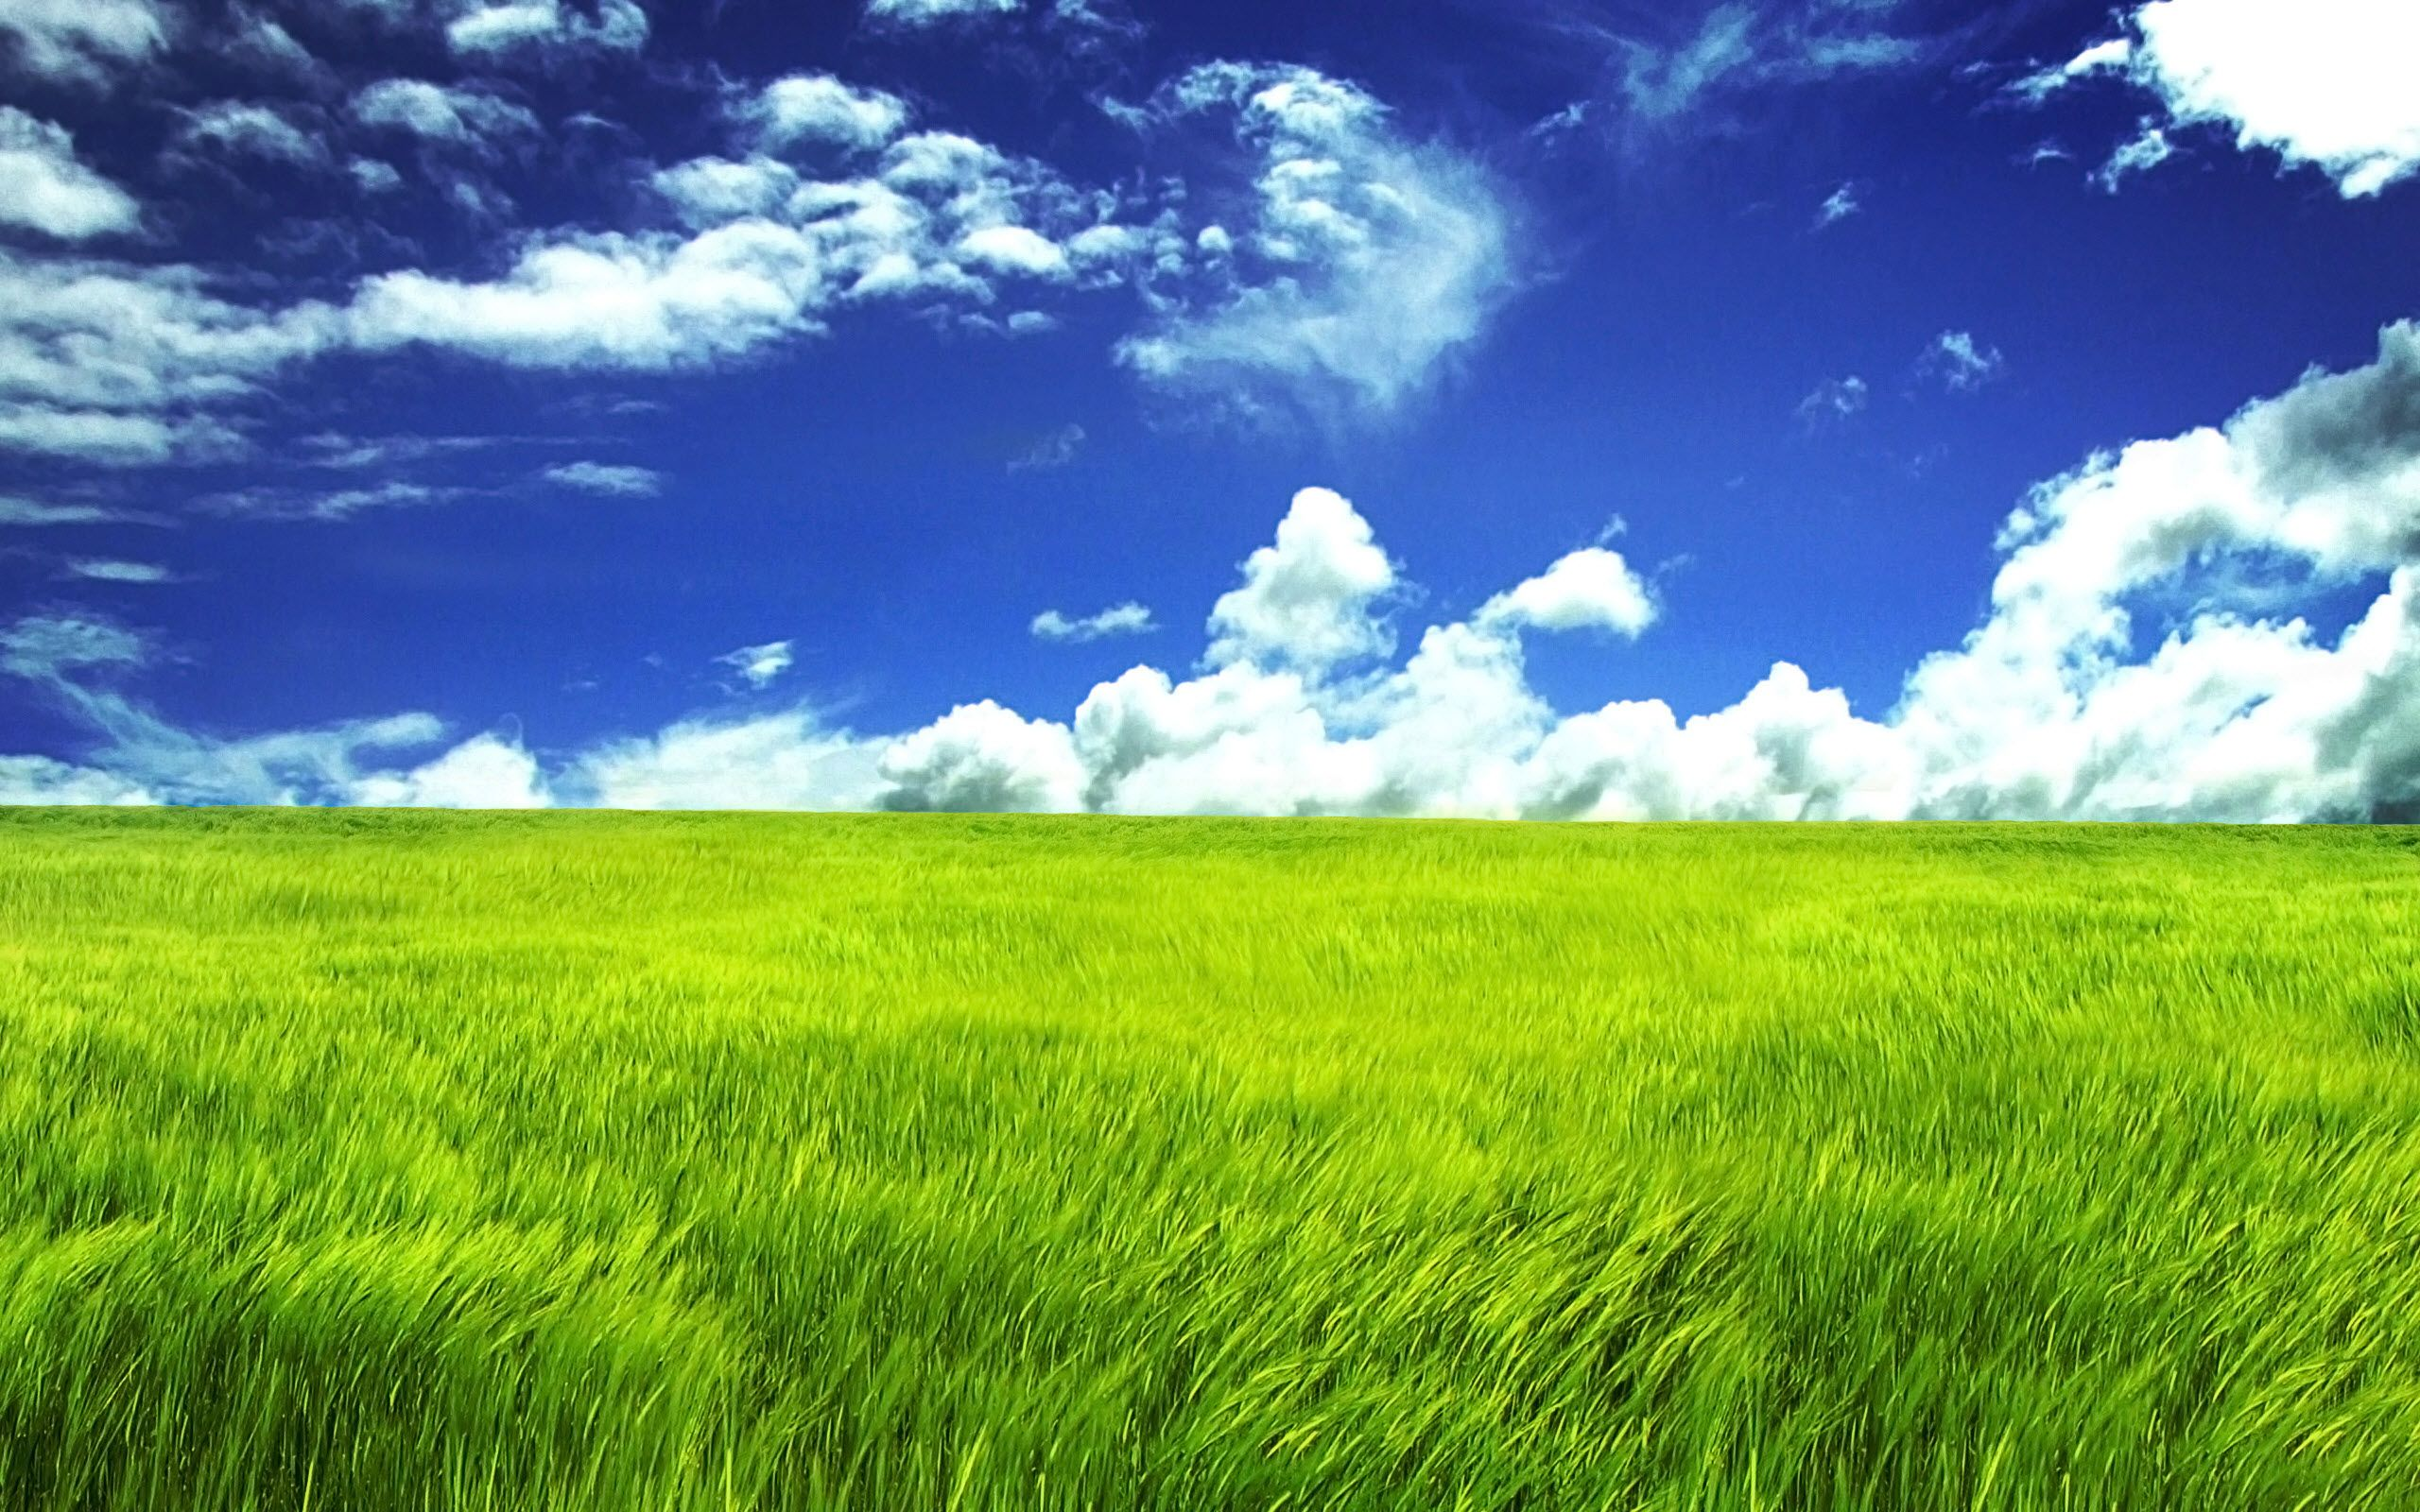 Nature Green Land Hd Wallpapers Landscape Wallpaper Grass Wallpaper Blue Sky Wallpaper